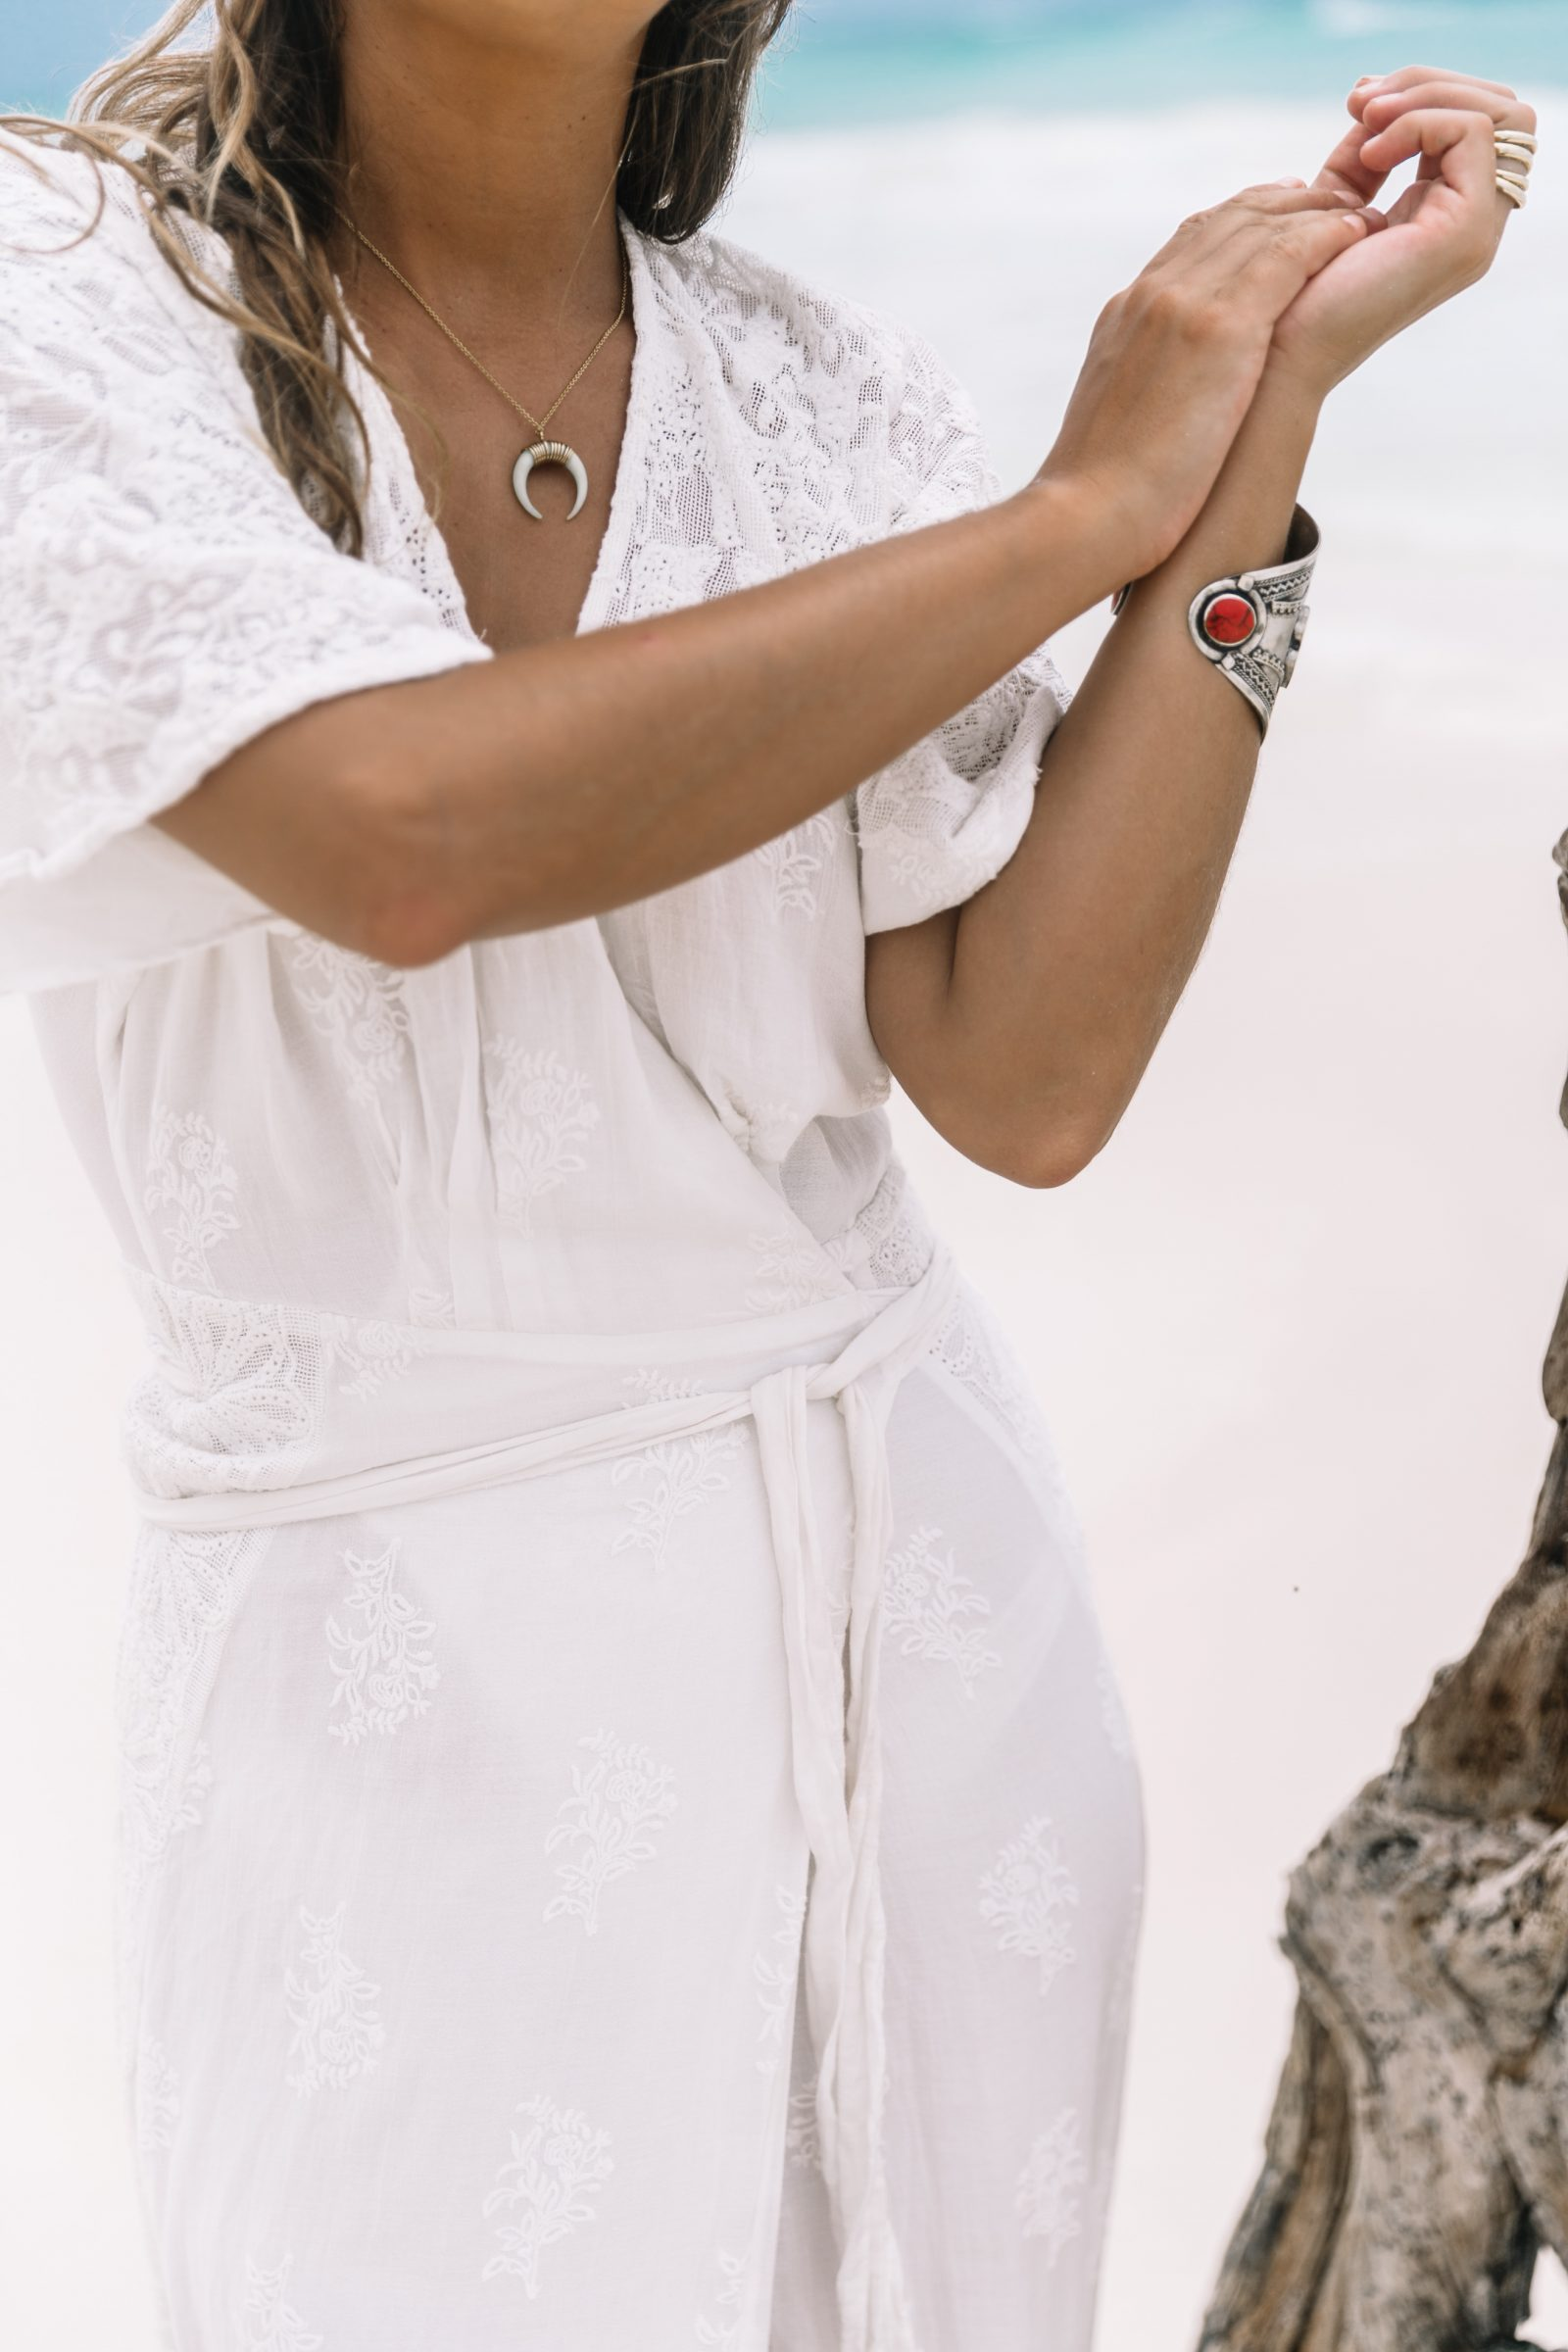 white_long_dress-boho_style-tulum_mexico-beach-floral_crown-outfit-collage_vintage-70